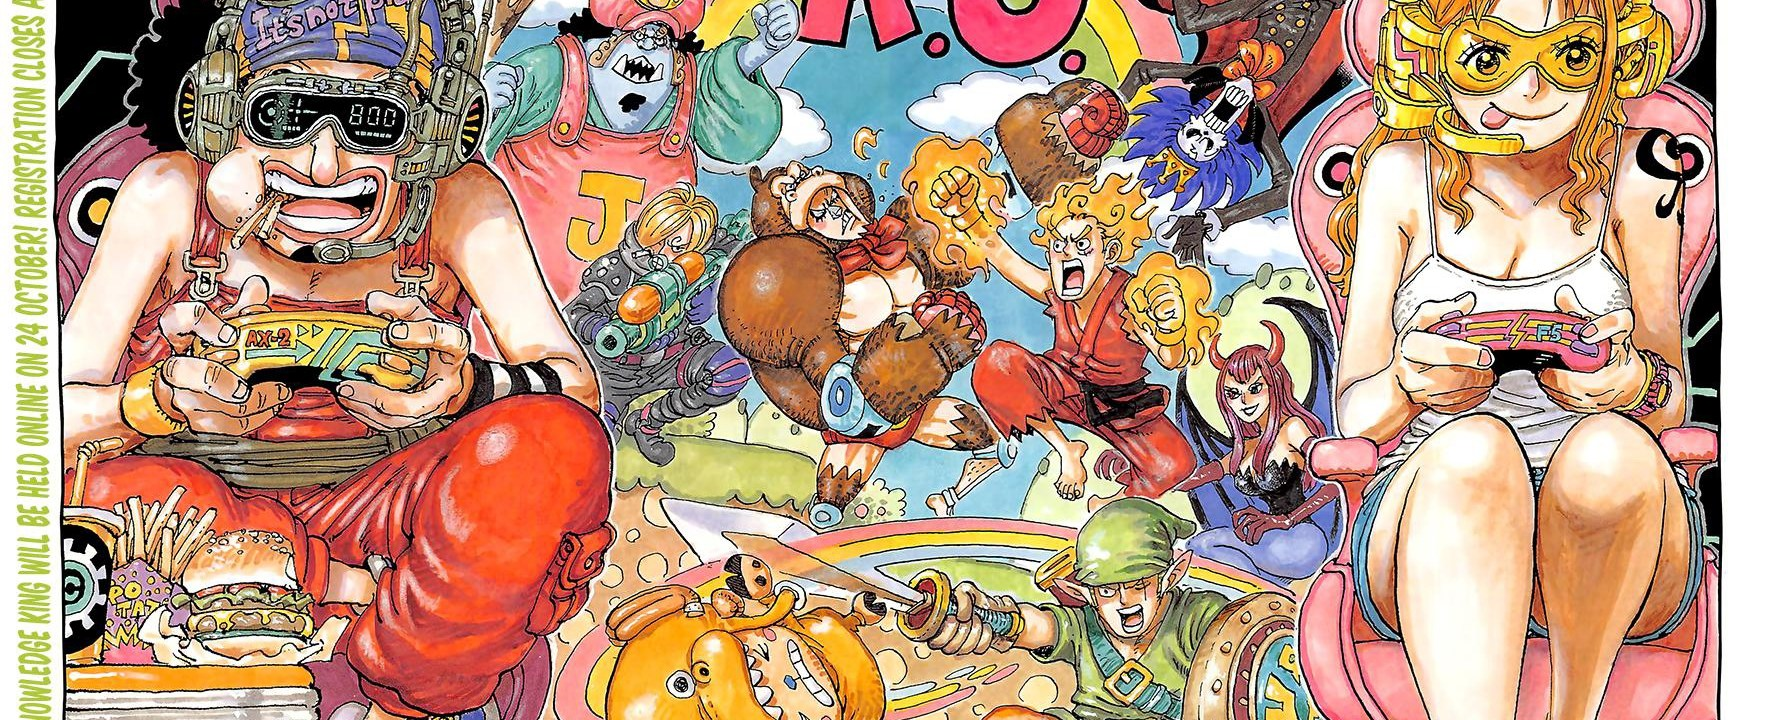 One Piece Chapter 1028 Cover Page